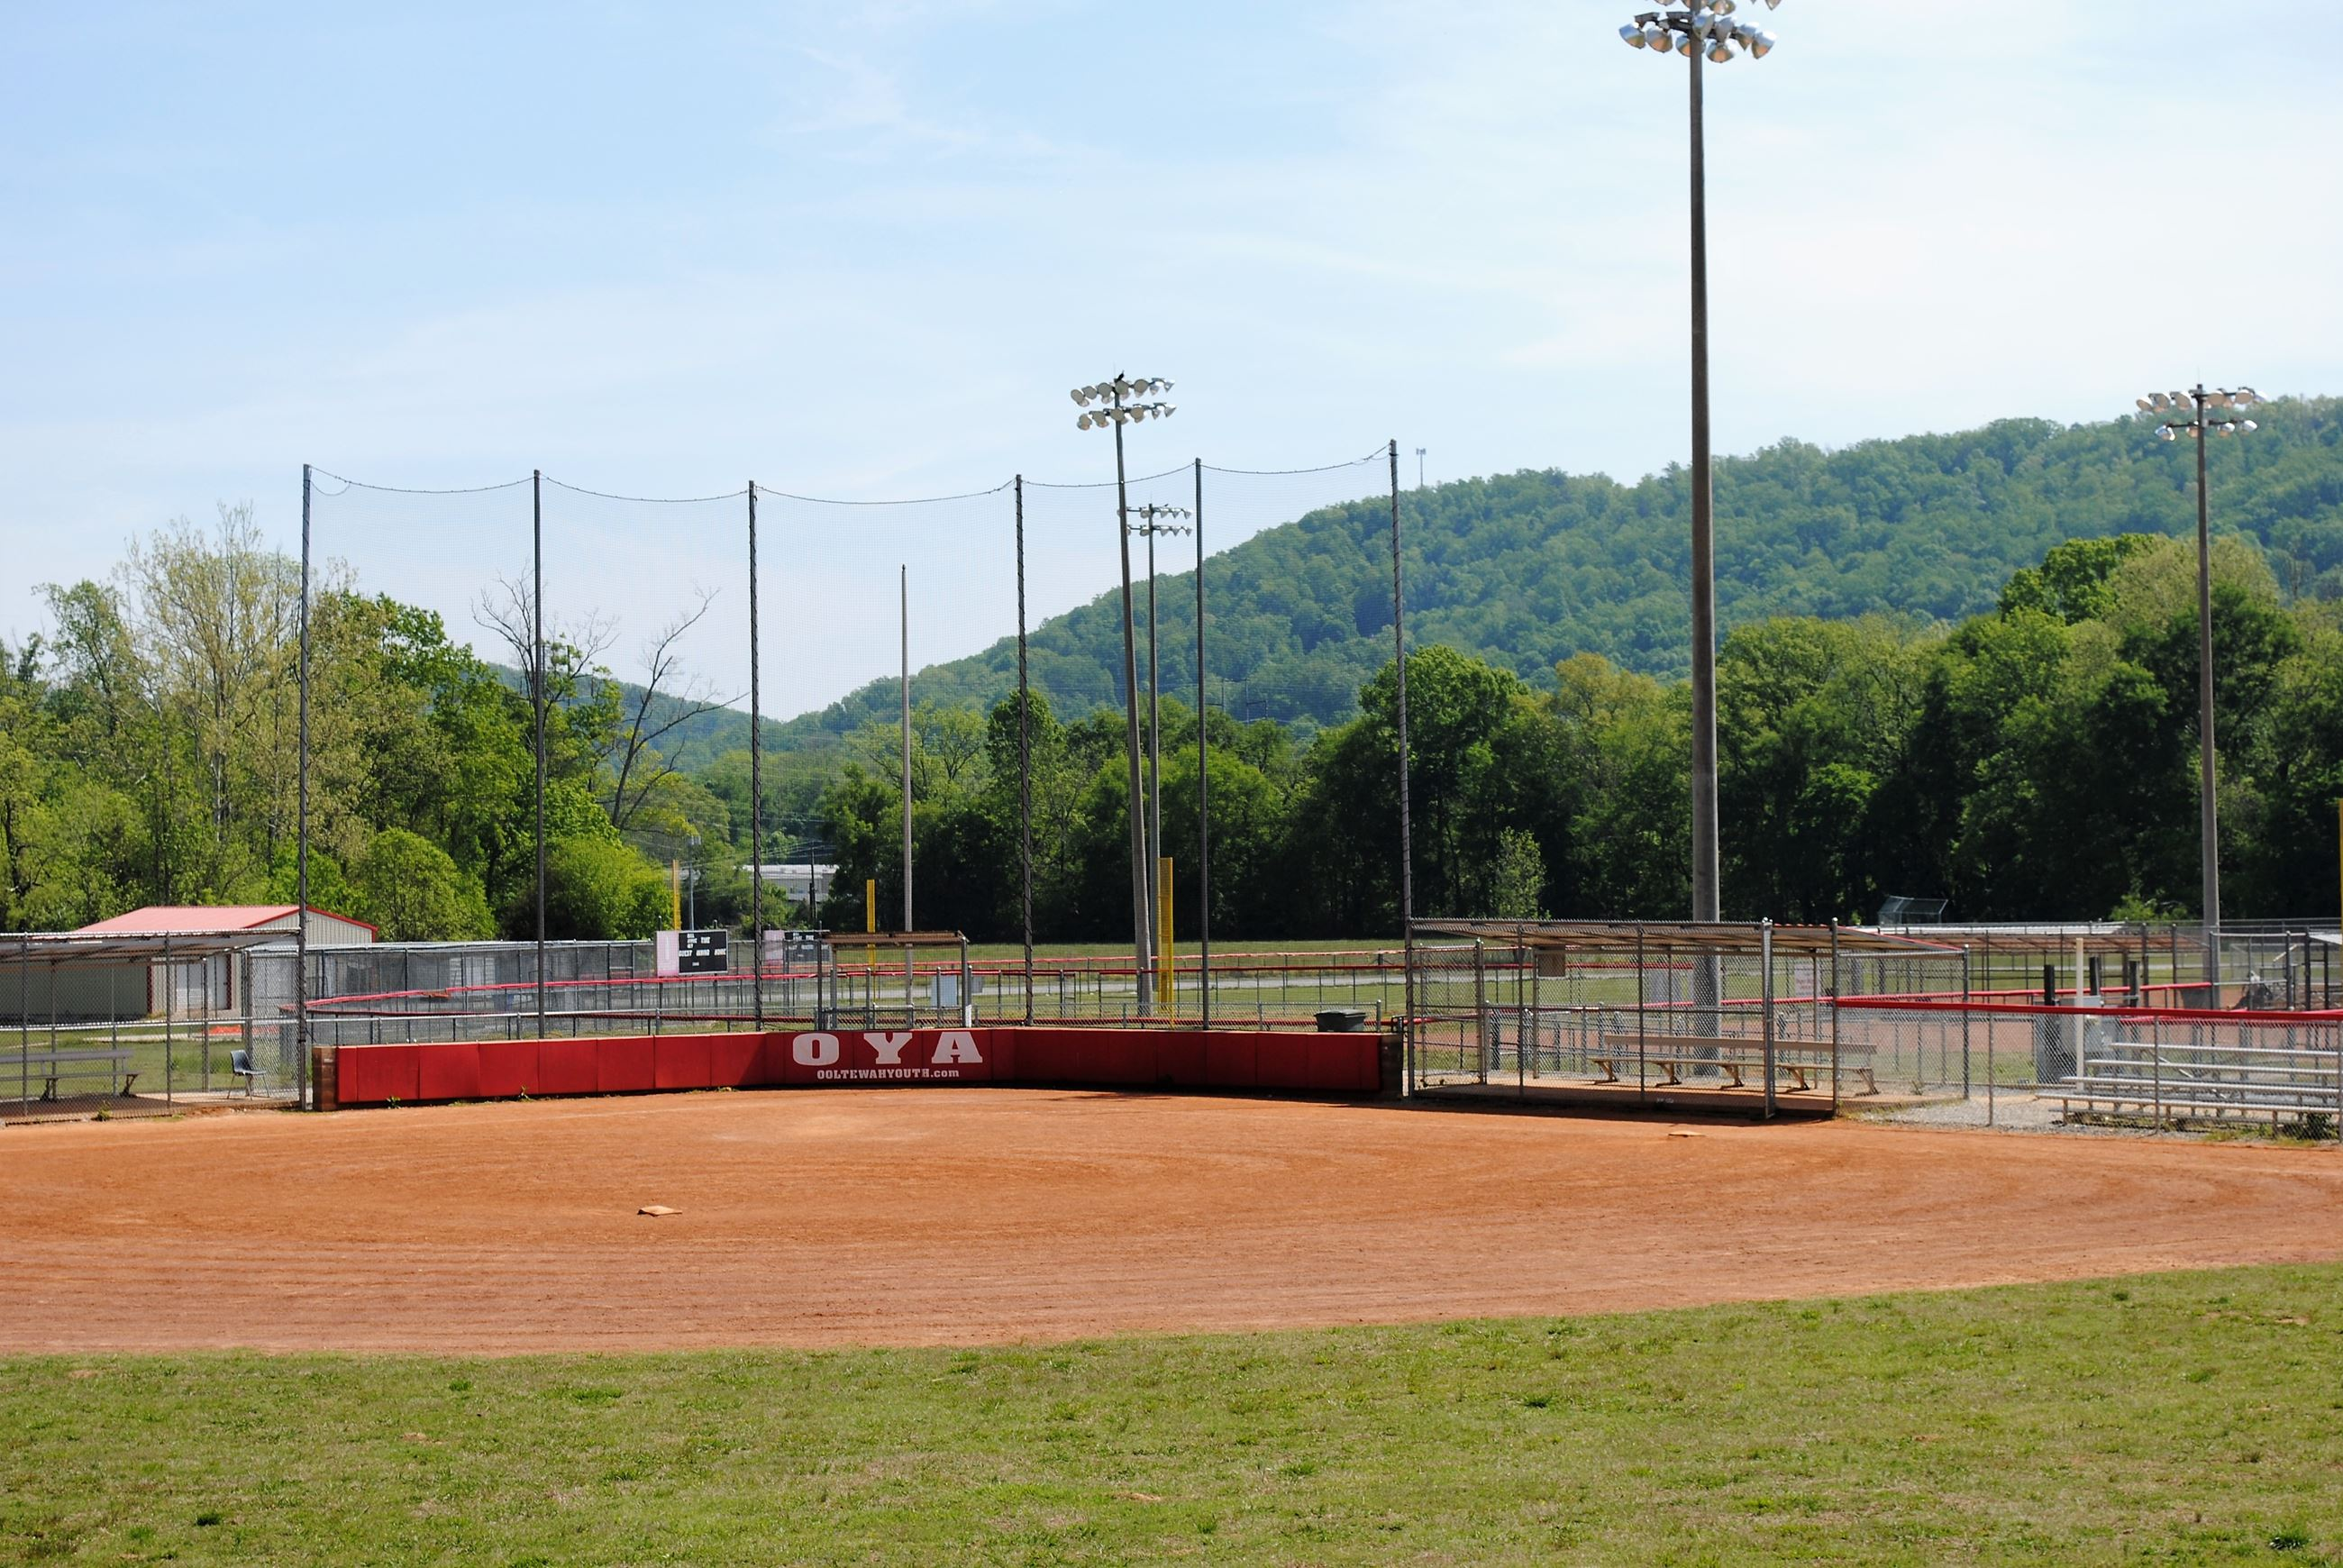 East Hamilton Nounty Recreation Complex Baseball Field